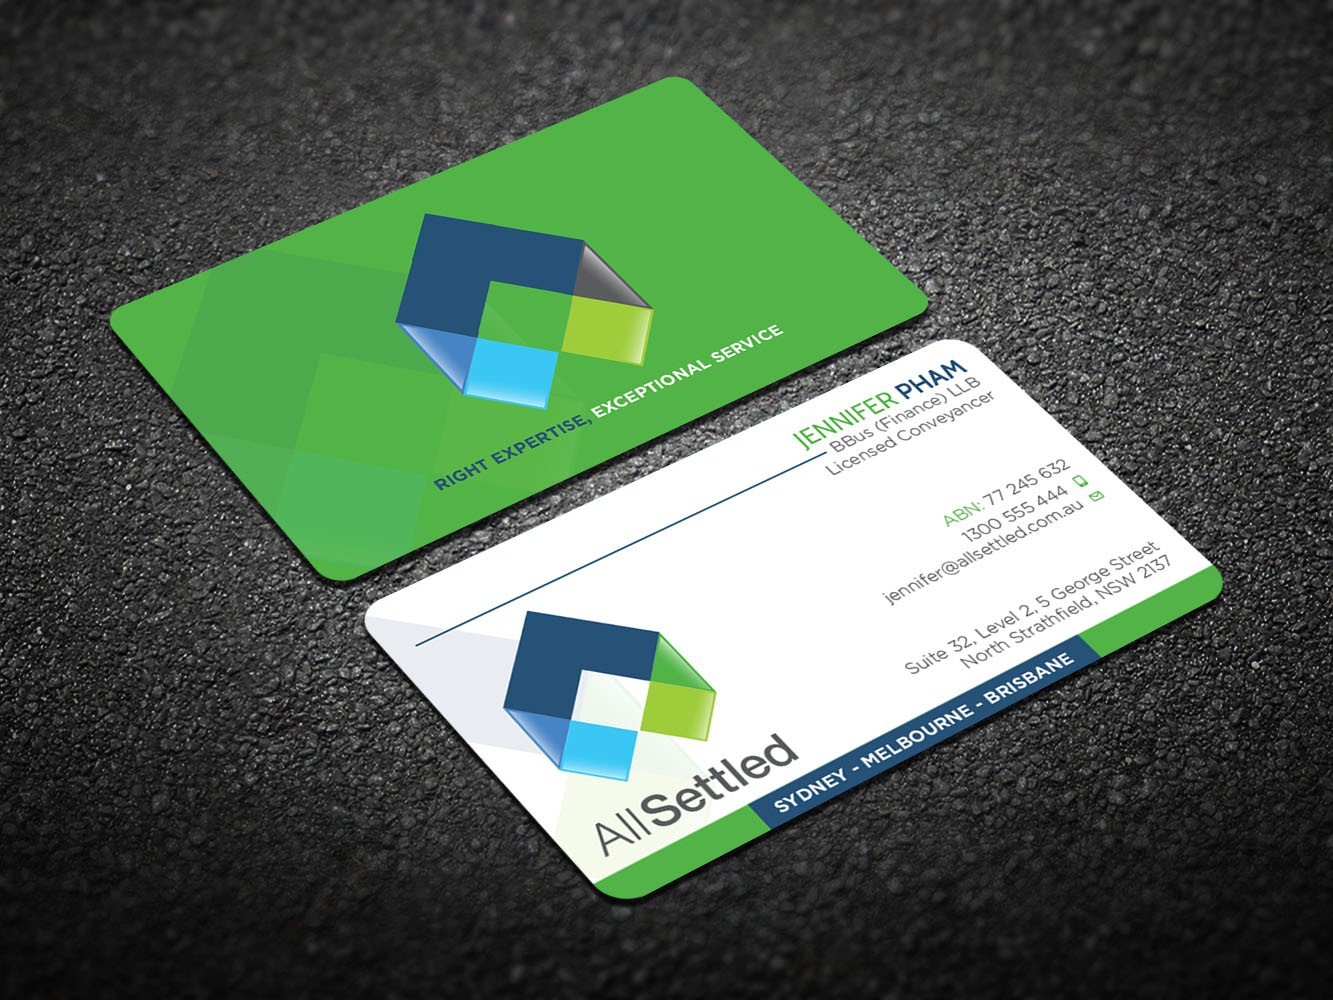 Elegant modern real estate business card design for all settled by business card design by design xeneration for all settled design 11278715 reheart Image collections